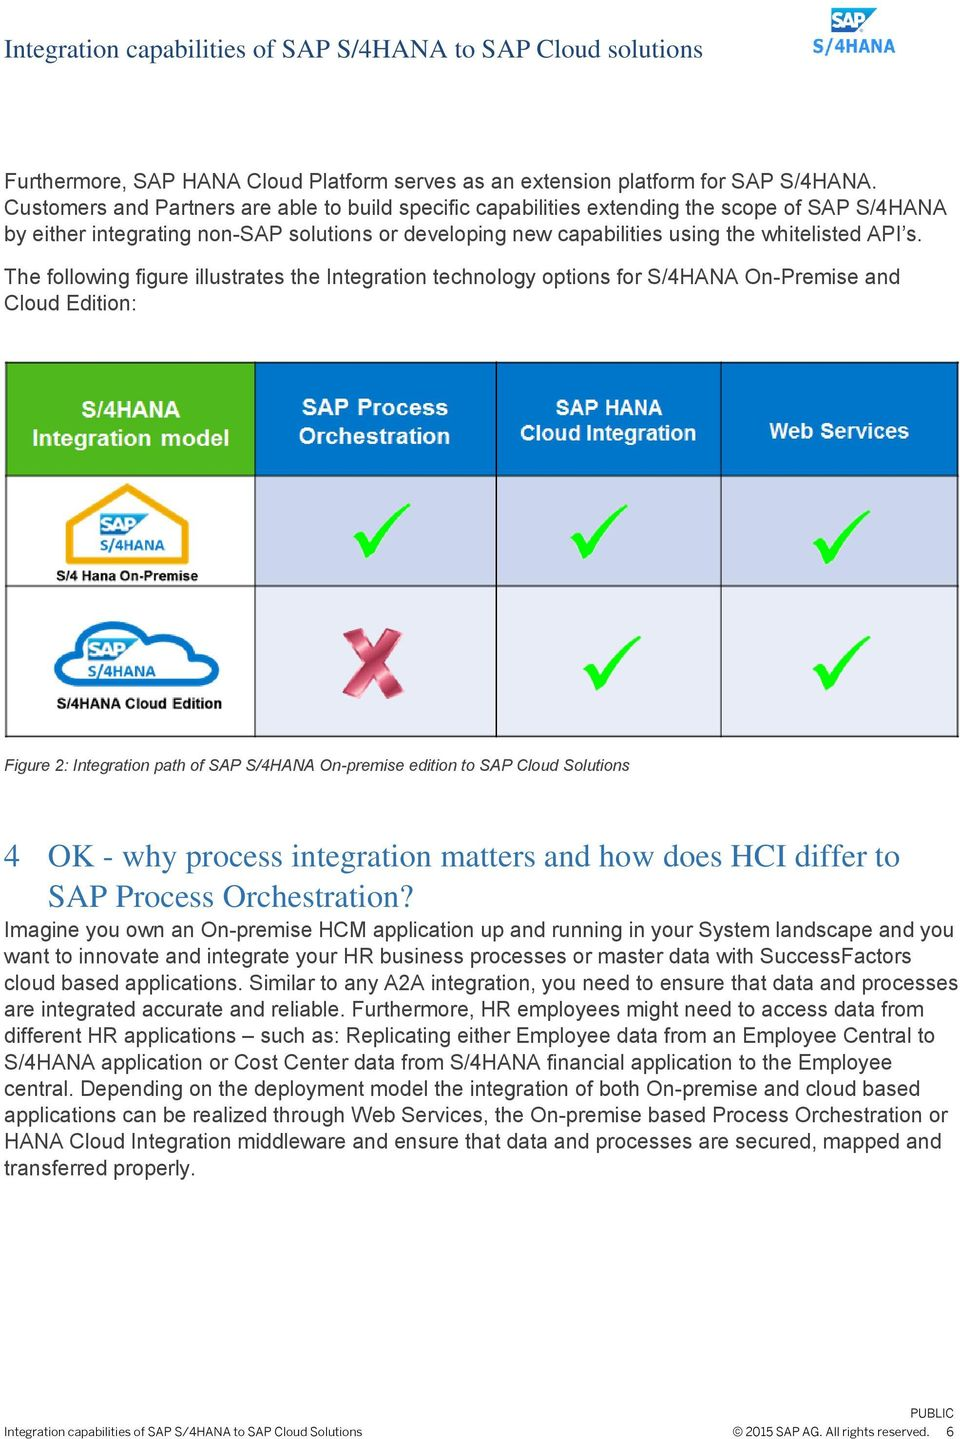 The following figure illustrates the Integration technology options for S/4HANA On-Premise and Cloud Edition: Figure 2: Integration path of SAP S/4HANA On-premise edition to SAP Cloud Solutions 4 OK